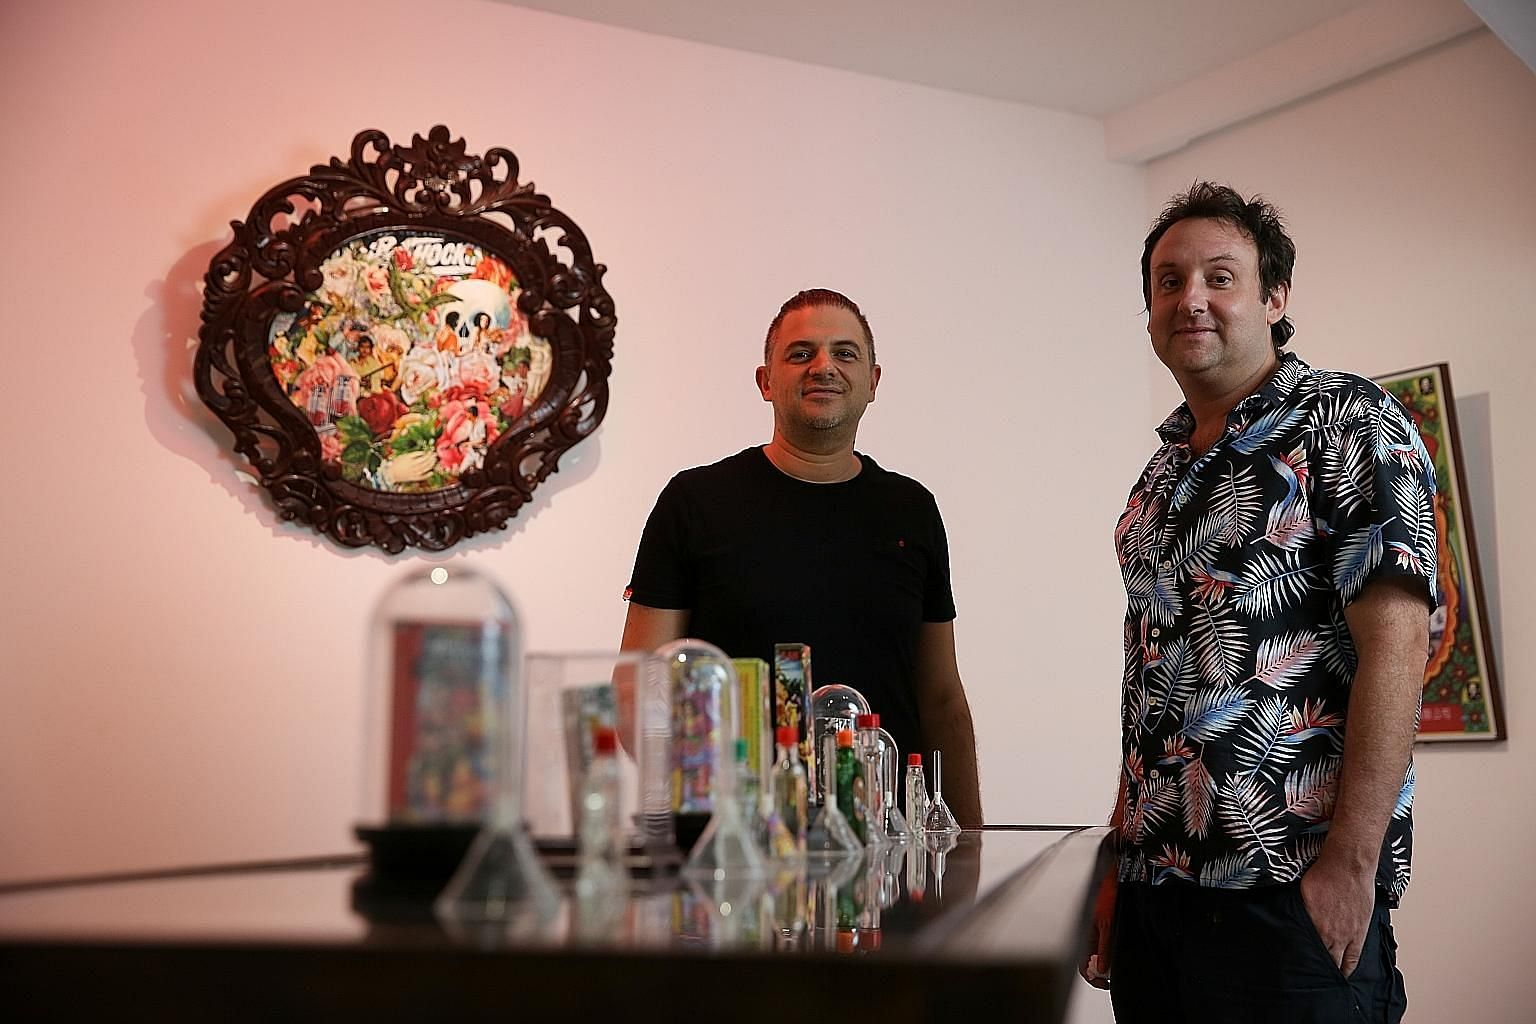 Scent designer Terry Jacobson (left) teams up with multimedia designer Mojoko (right) for Sick Scents.